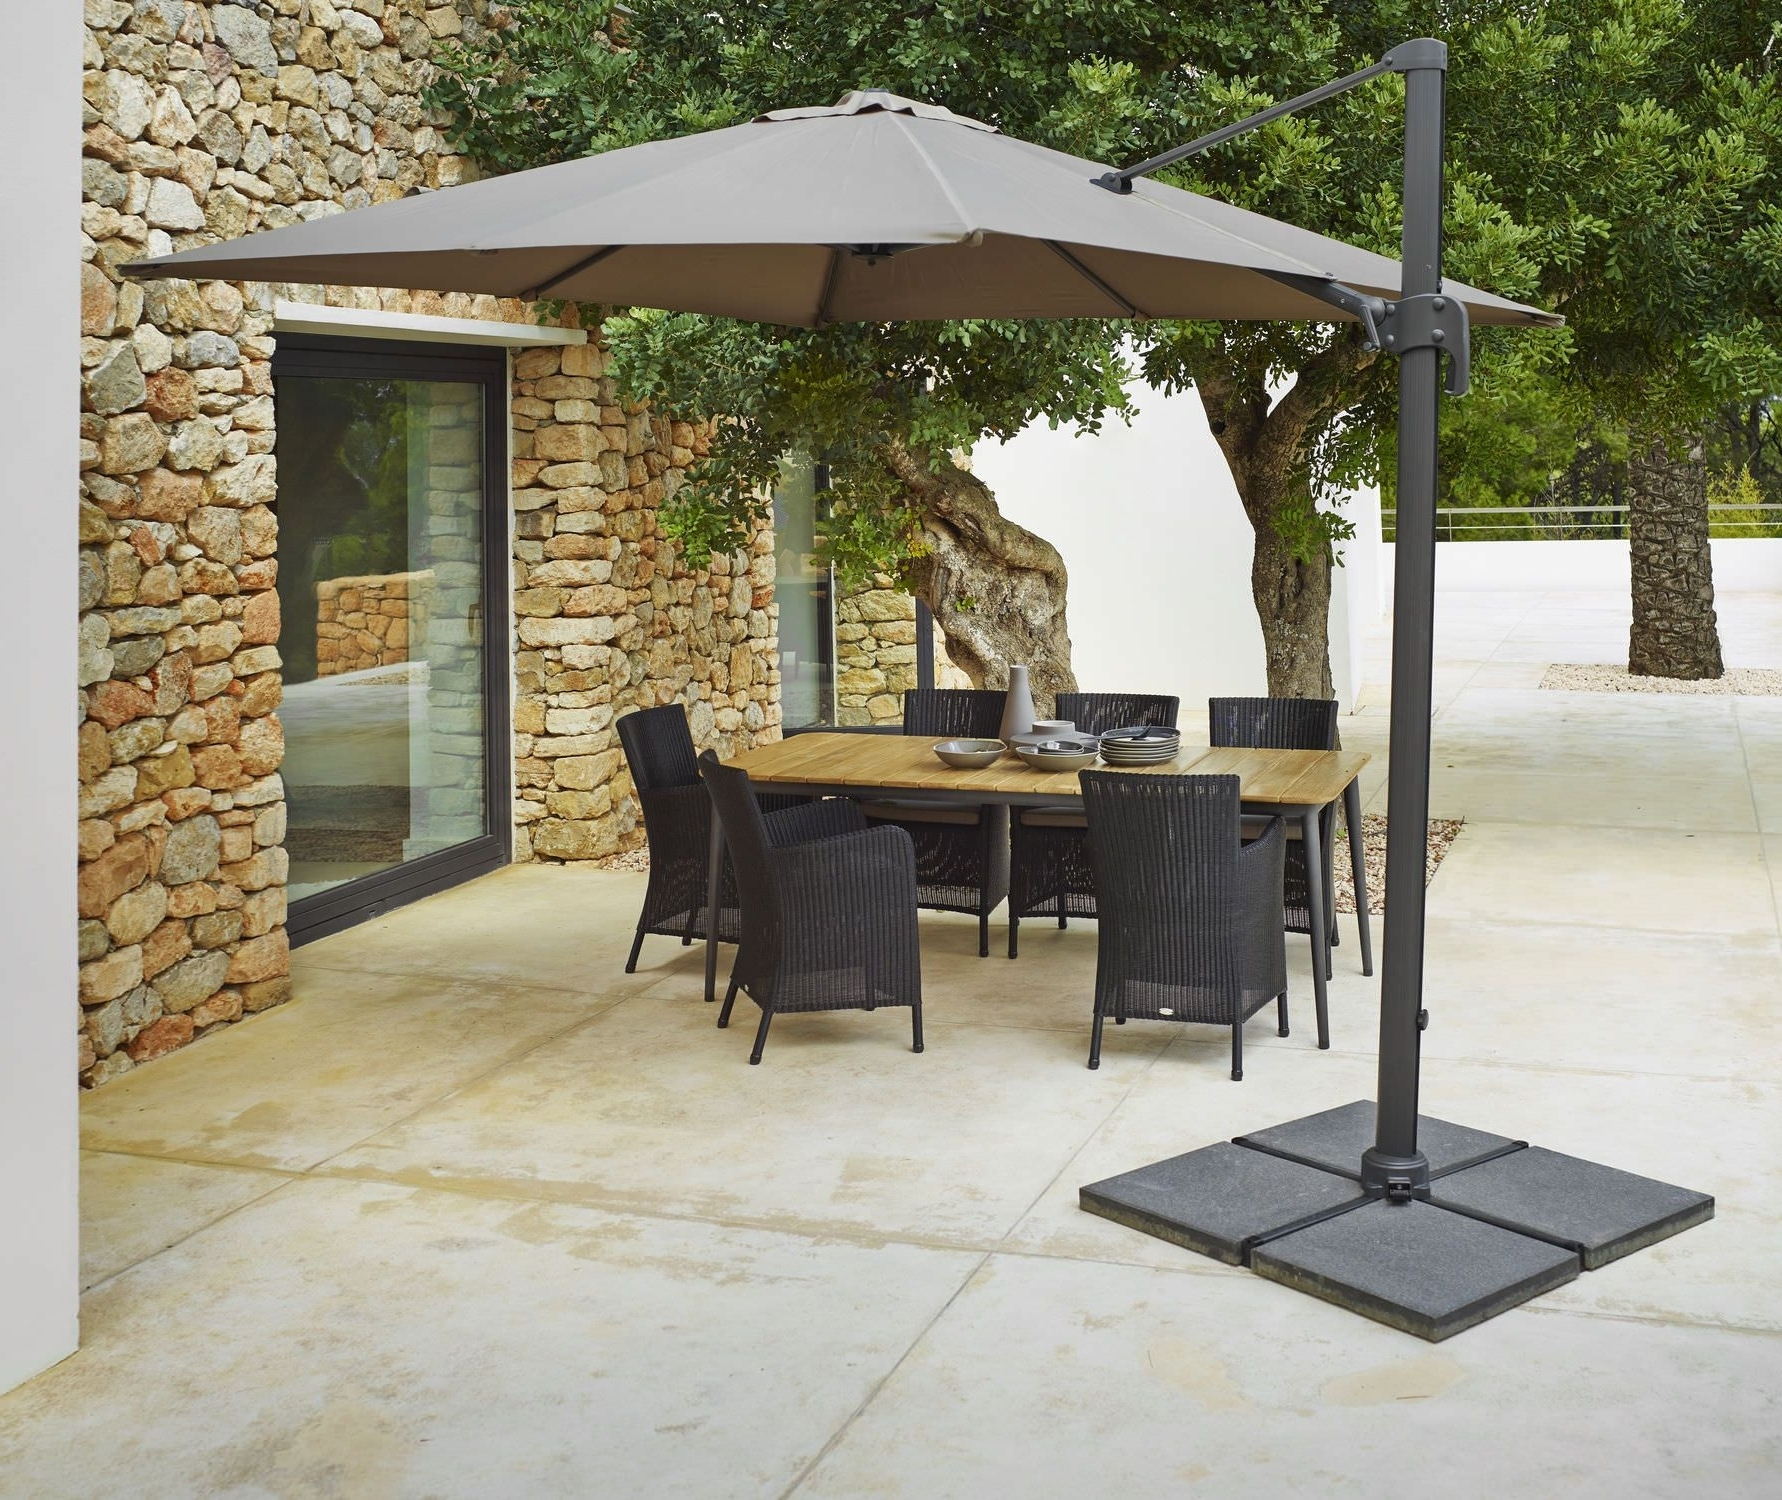 Outdoor Umbrella Bases Inspirational Fset Patio Umbrella Clearance Within Widely Used Patio Umbrellas And Bases (Gallery 12 of 20)